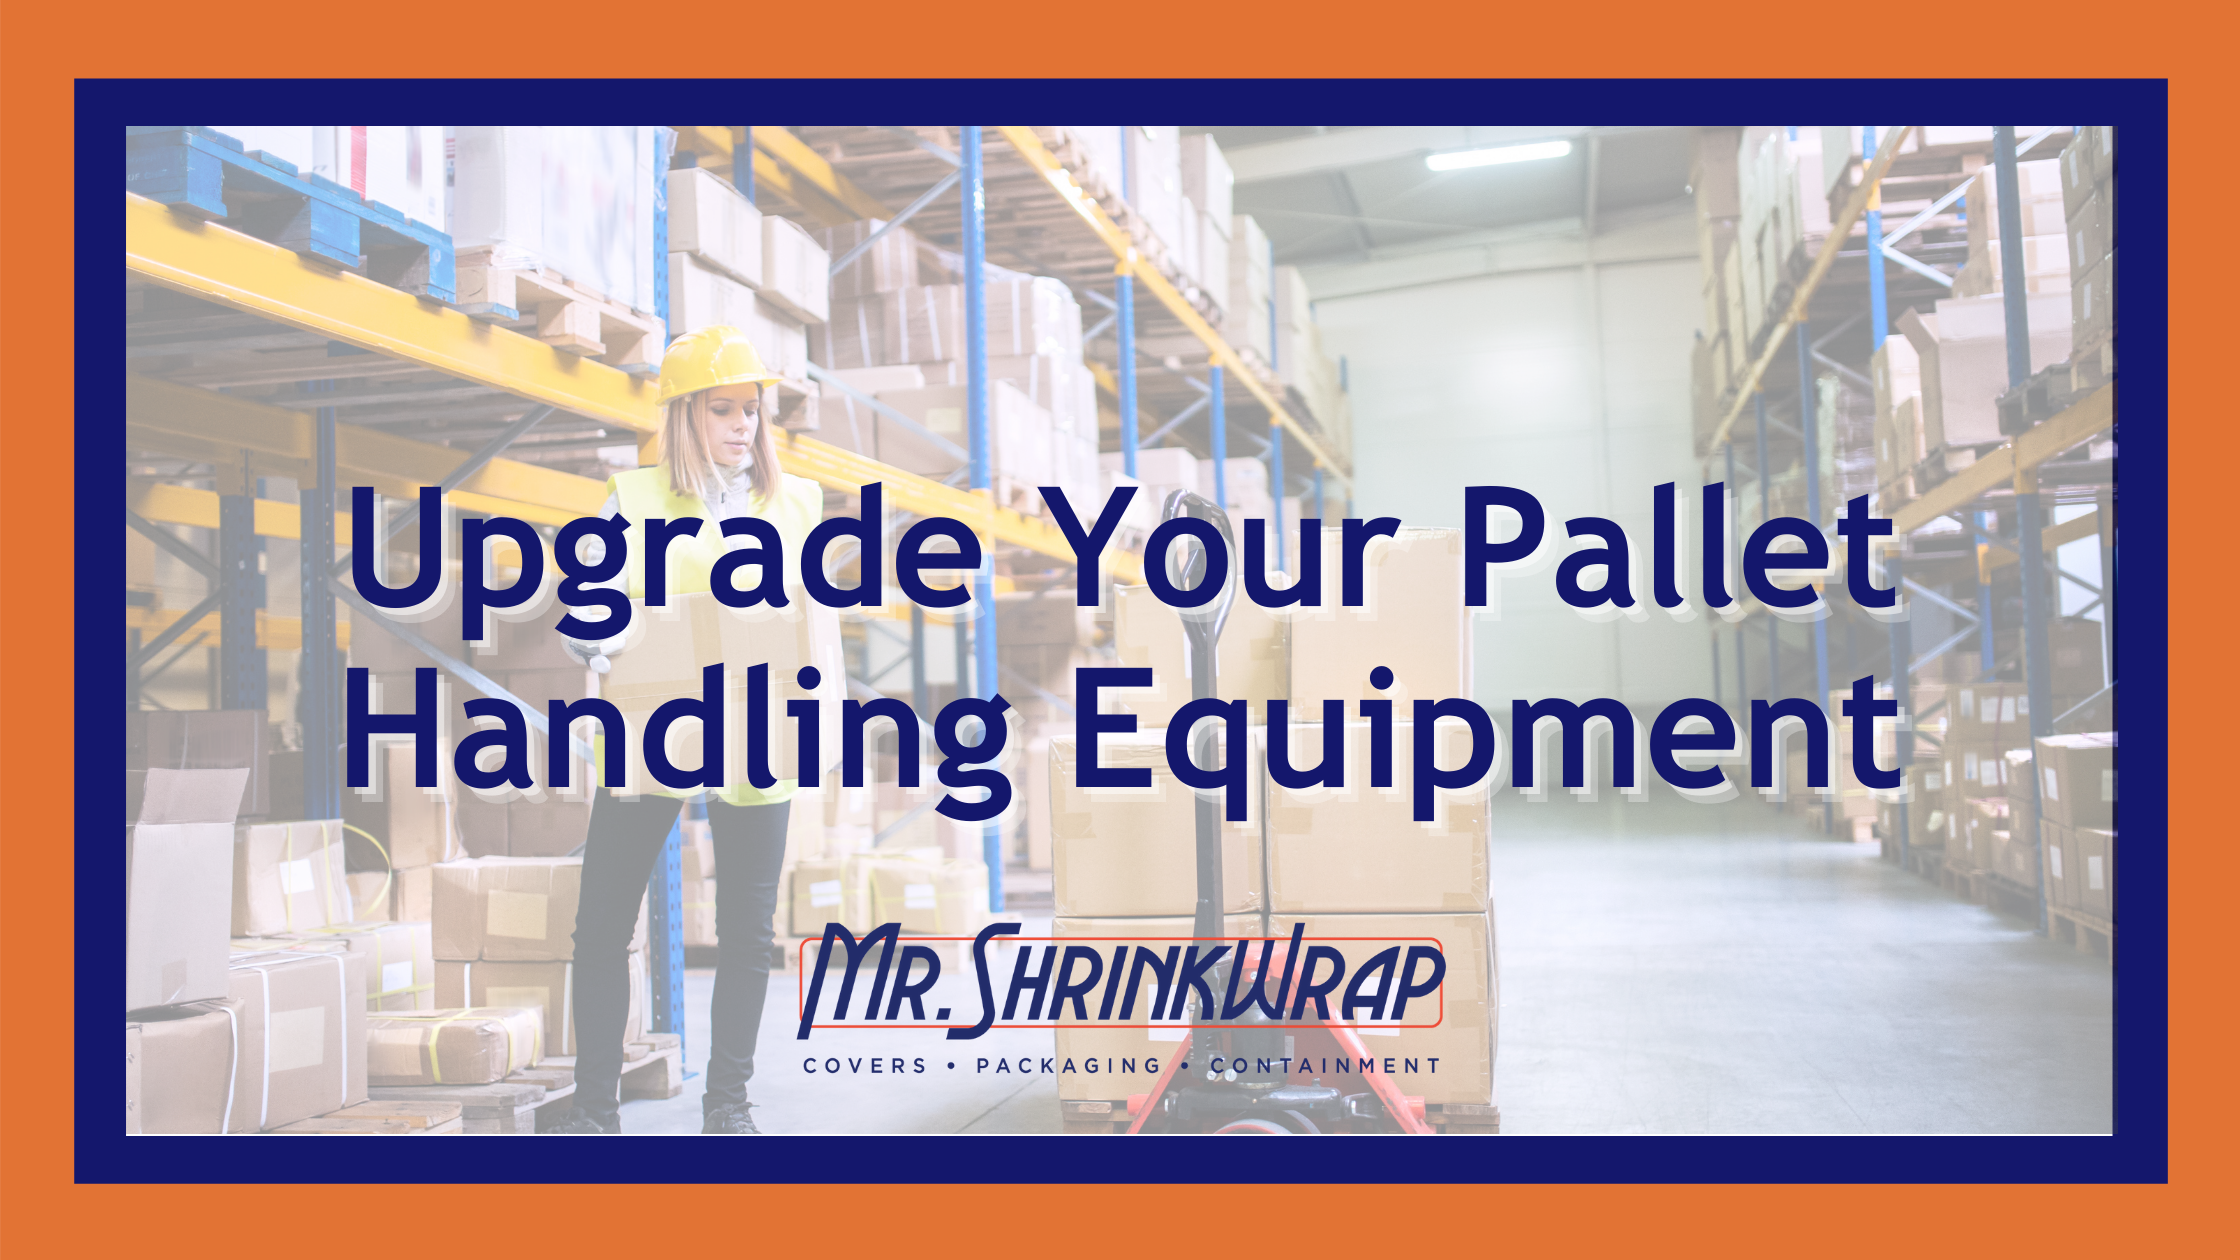 Upgrade your pallet handling equipment